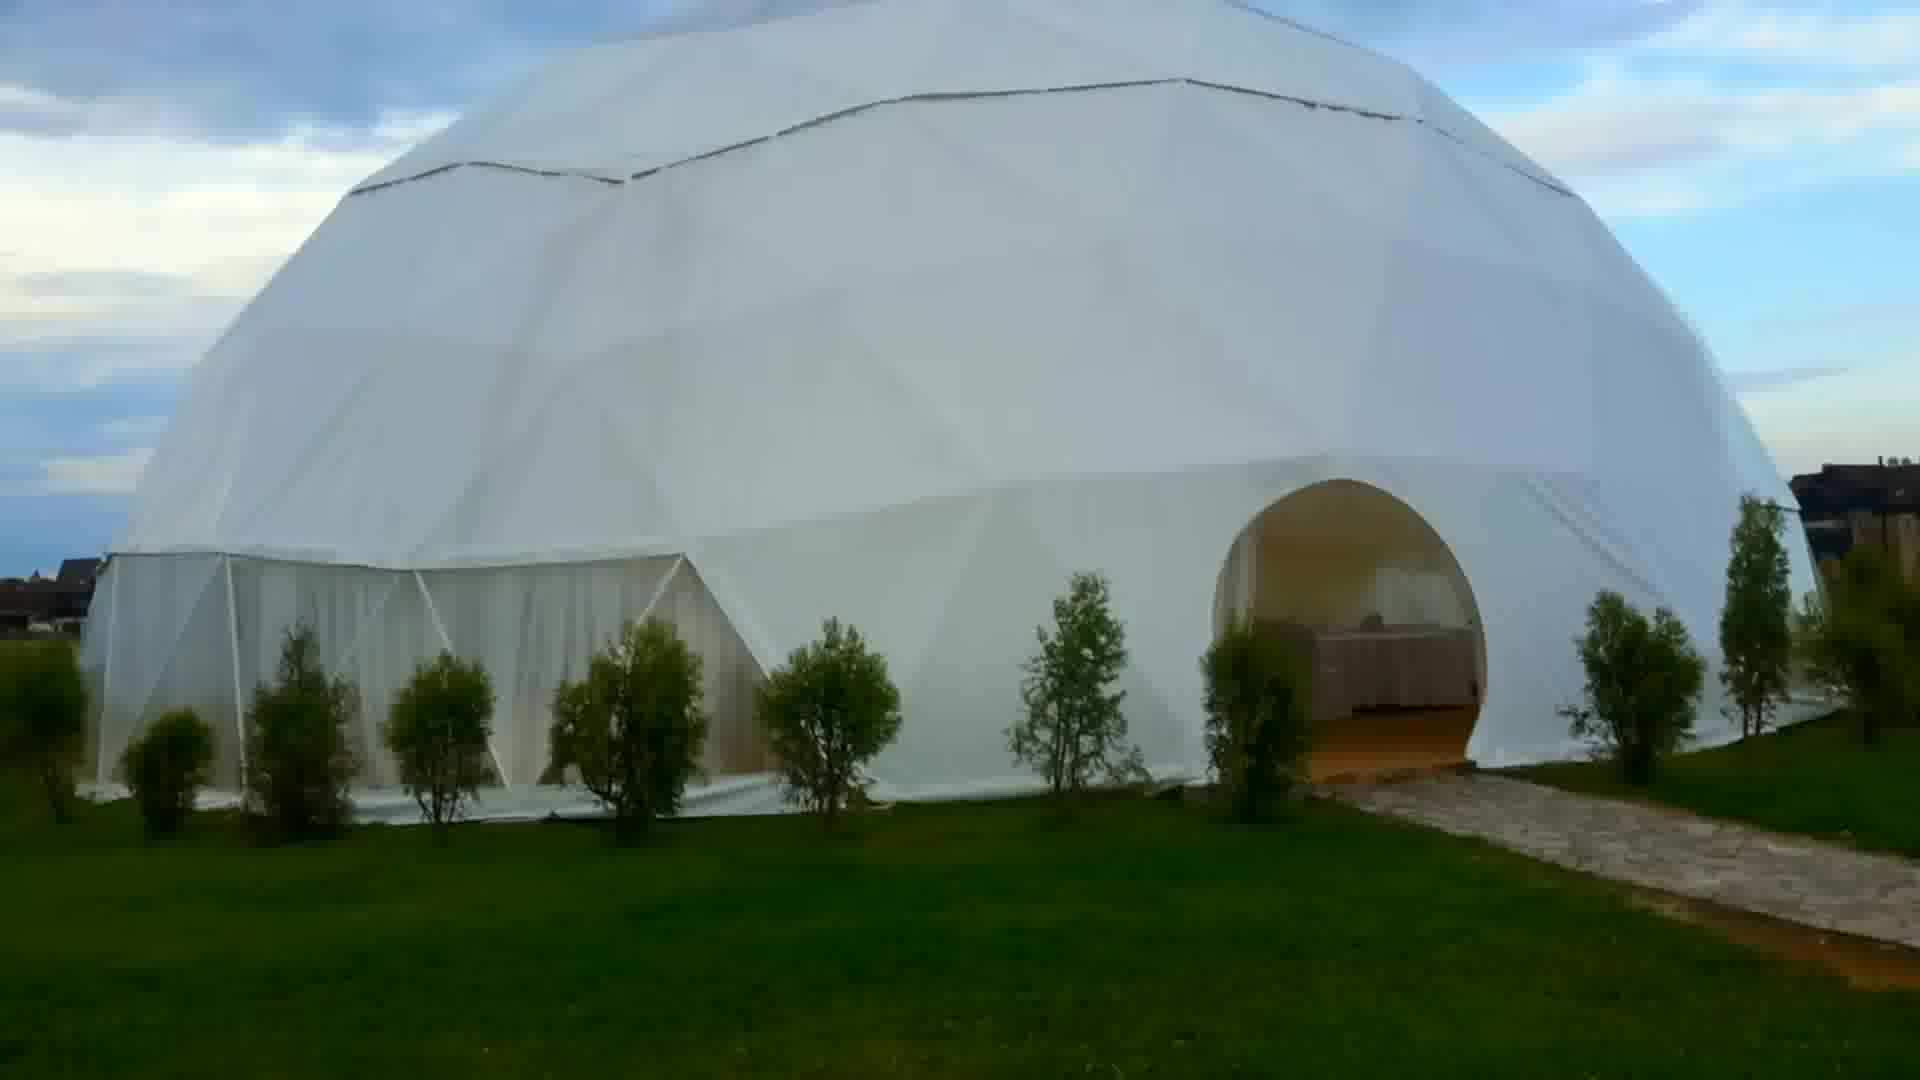 Top selling PVC fabric coated diy party dome tent 30 meter c&er trailer tent : diy dome tent - memphite.com